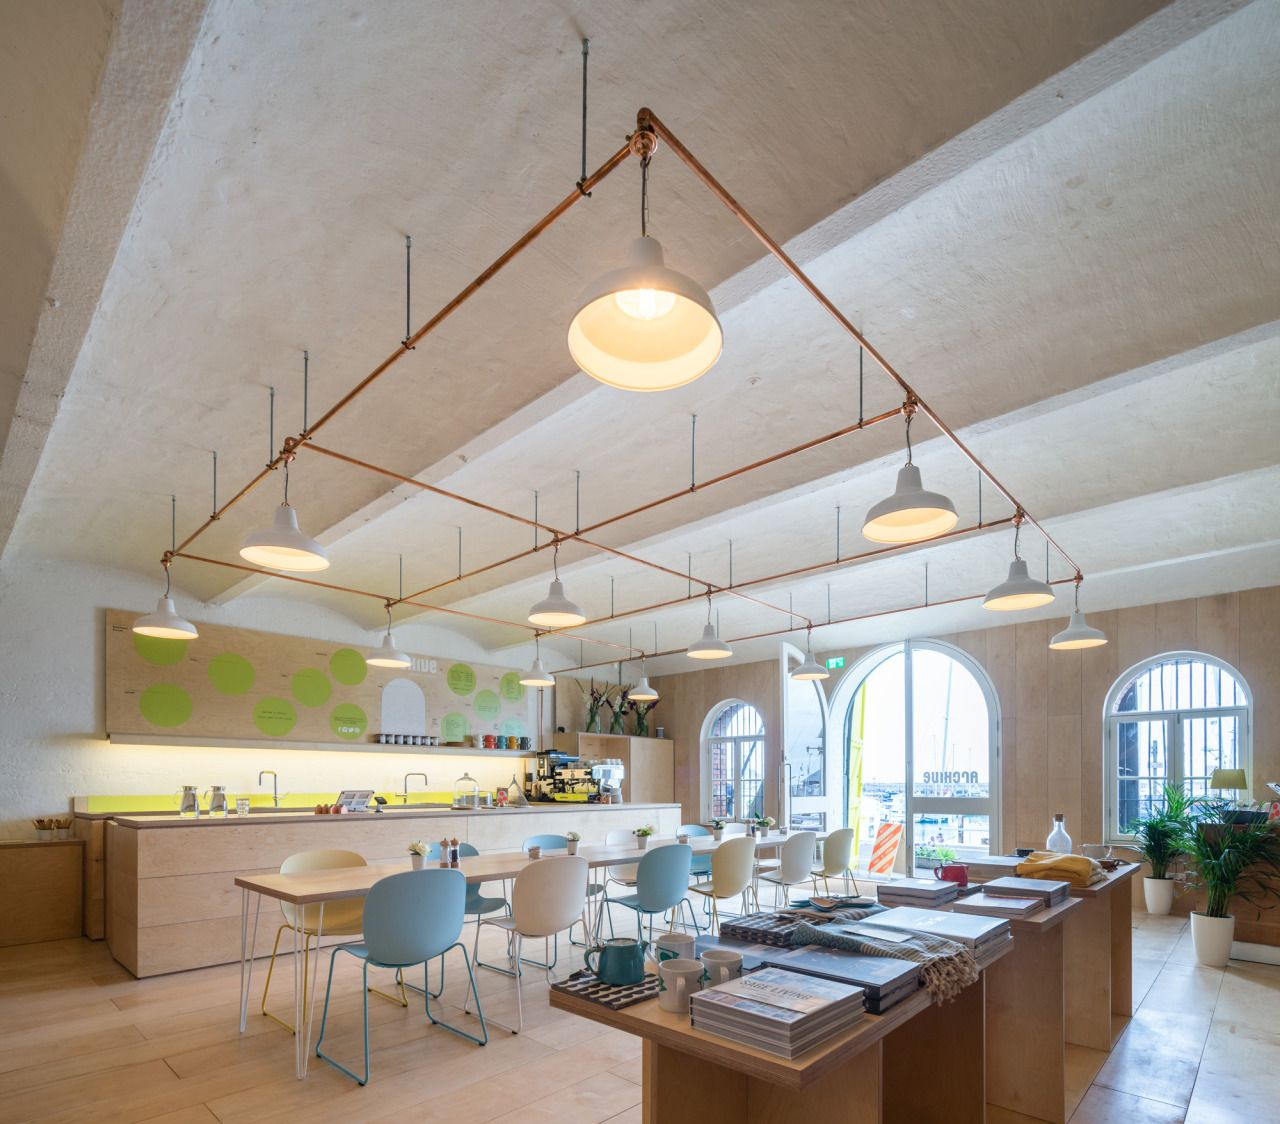 Kitchen Store Design: Coastal Cafe By Haptic Features Cabin-shaped